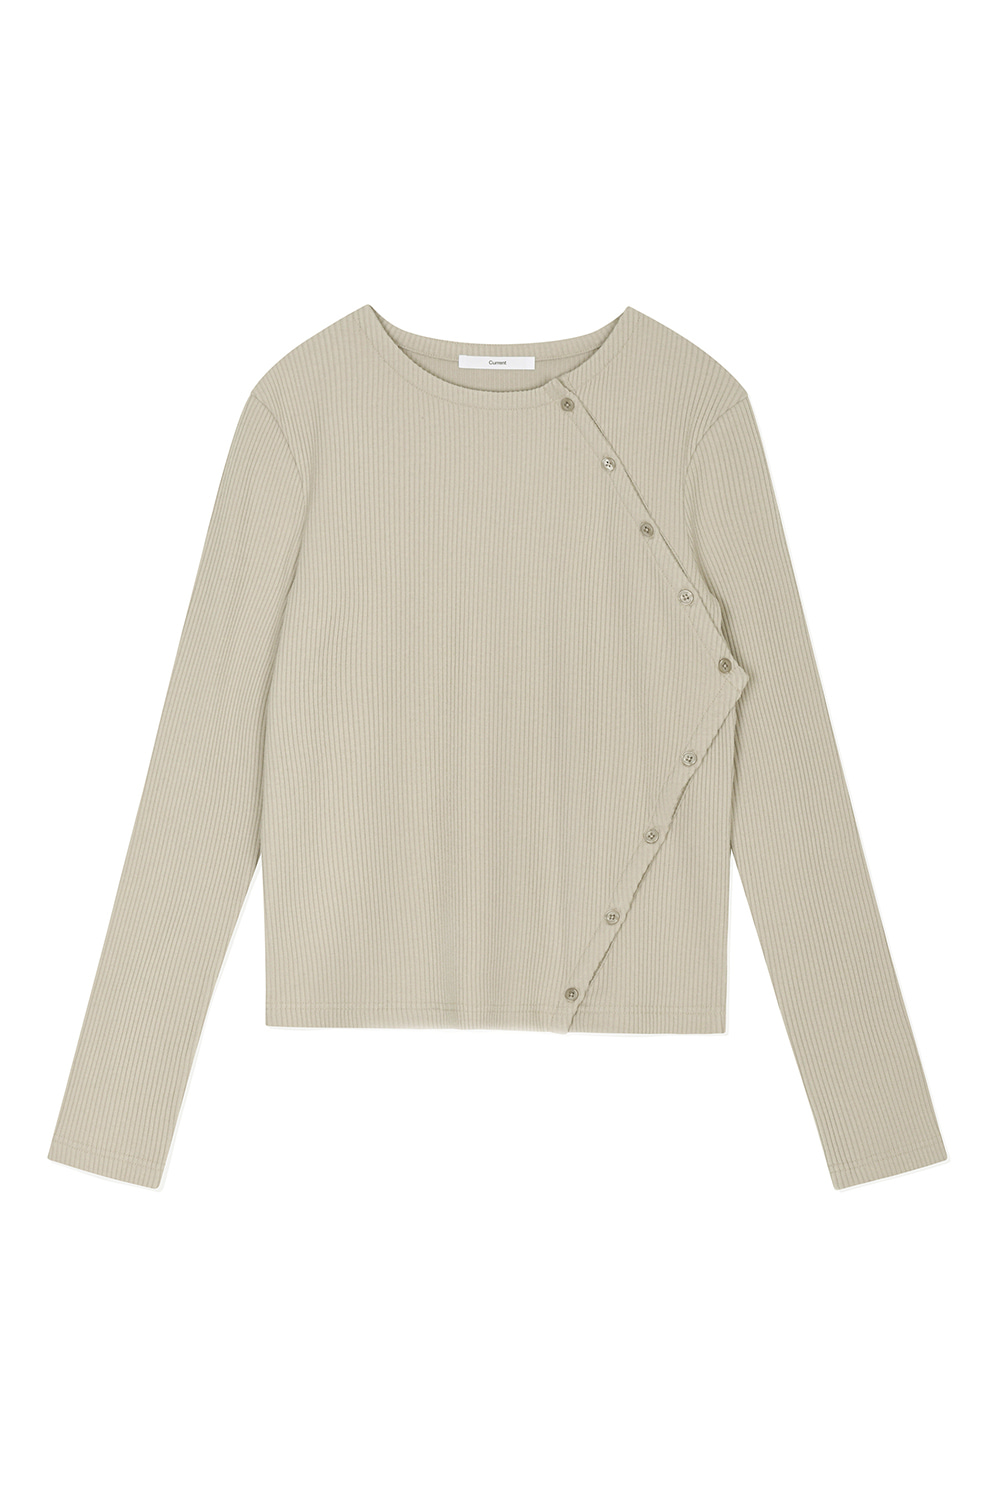 Wool Fitted Cardigan Women JA [Sand Beige] -10%